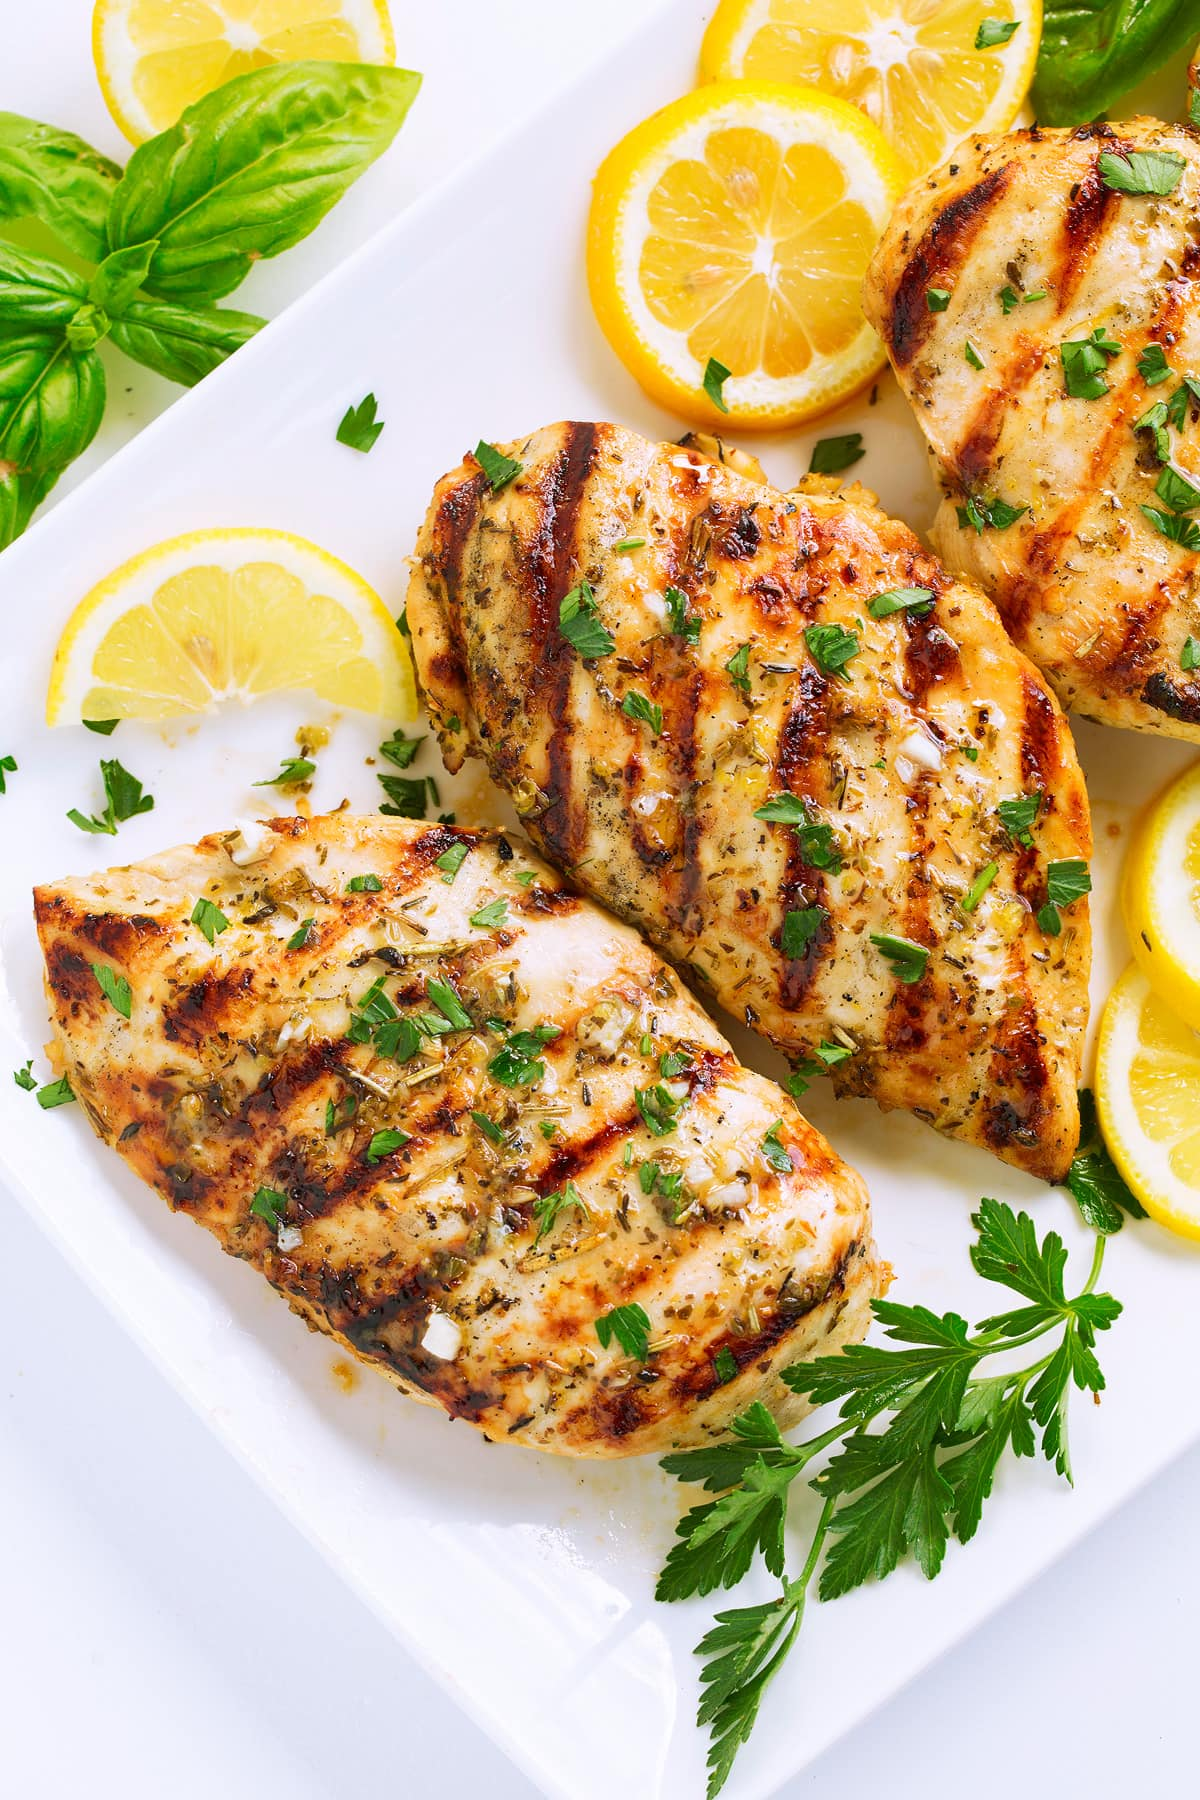 Close up image of grilled chicken breasts with herb topping and char marks.